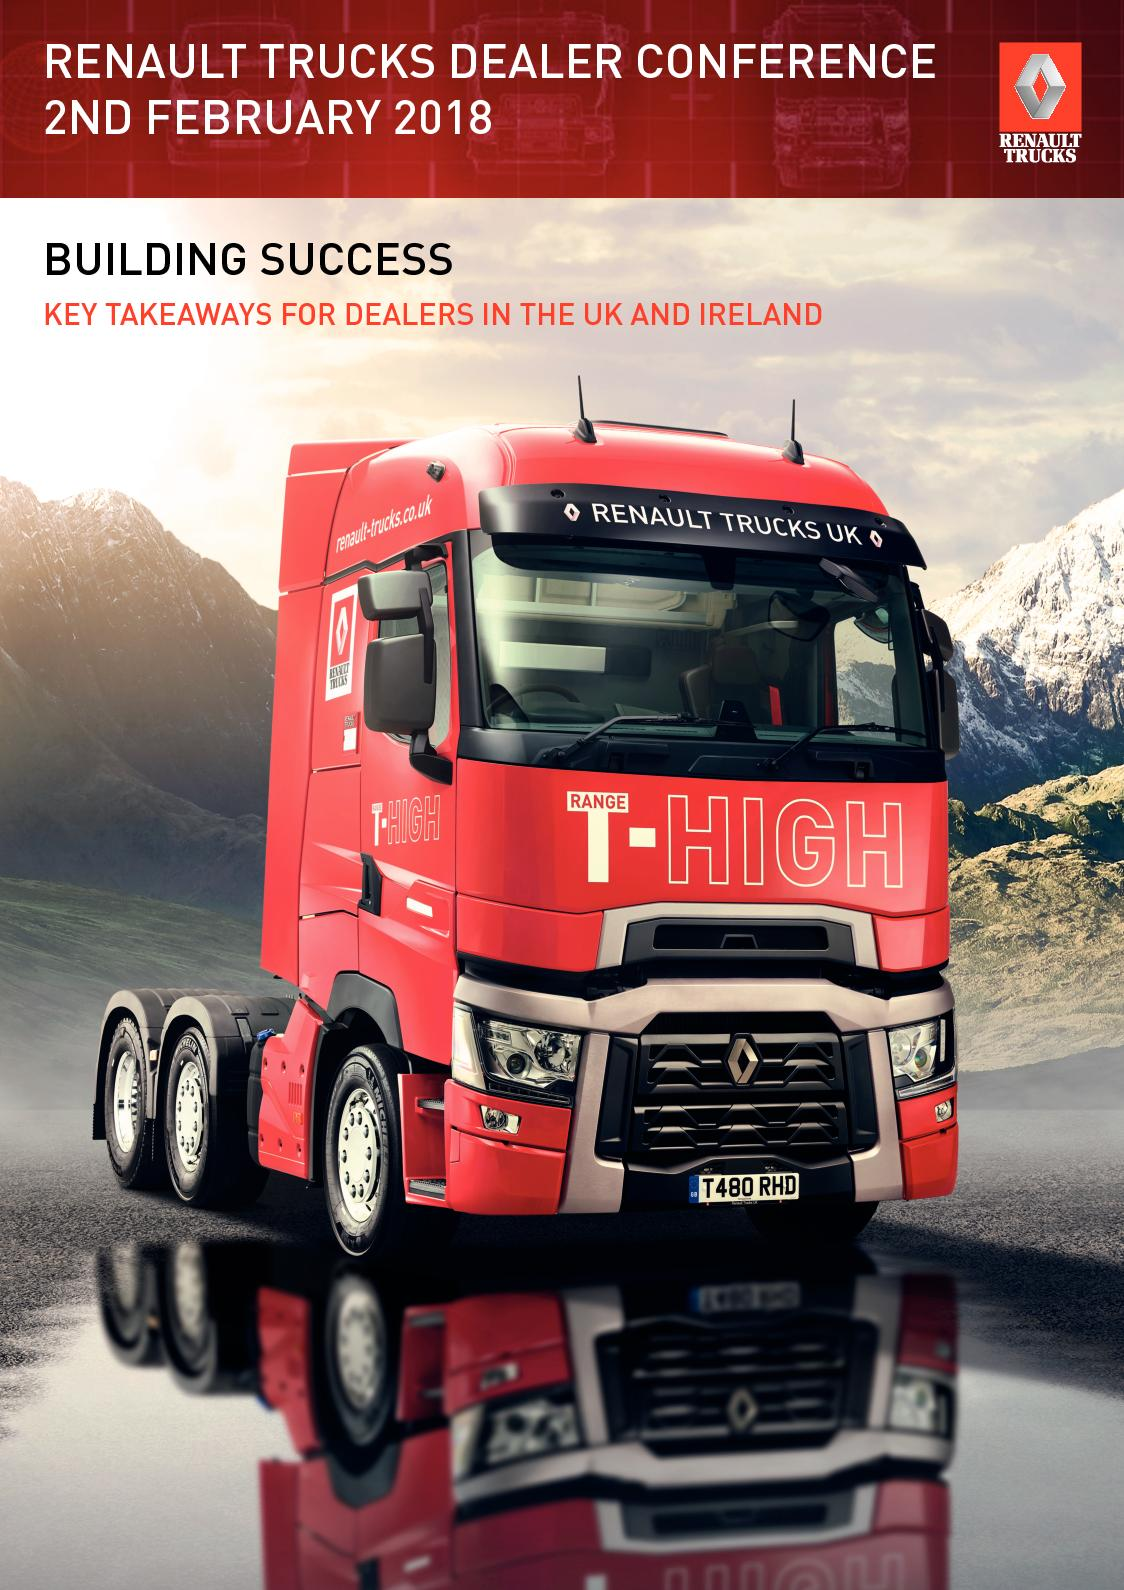 c6bea3a66c Calaméo - Renault Trucks Conference Key Takeaways